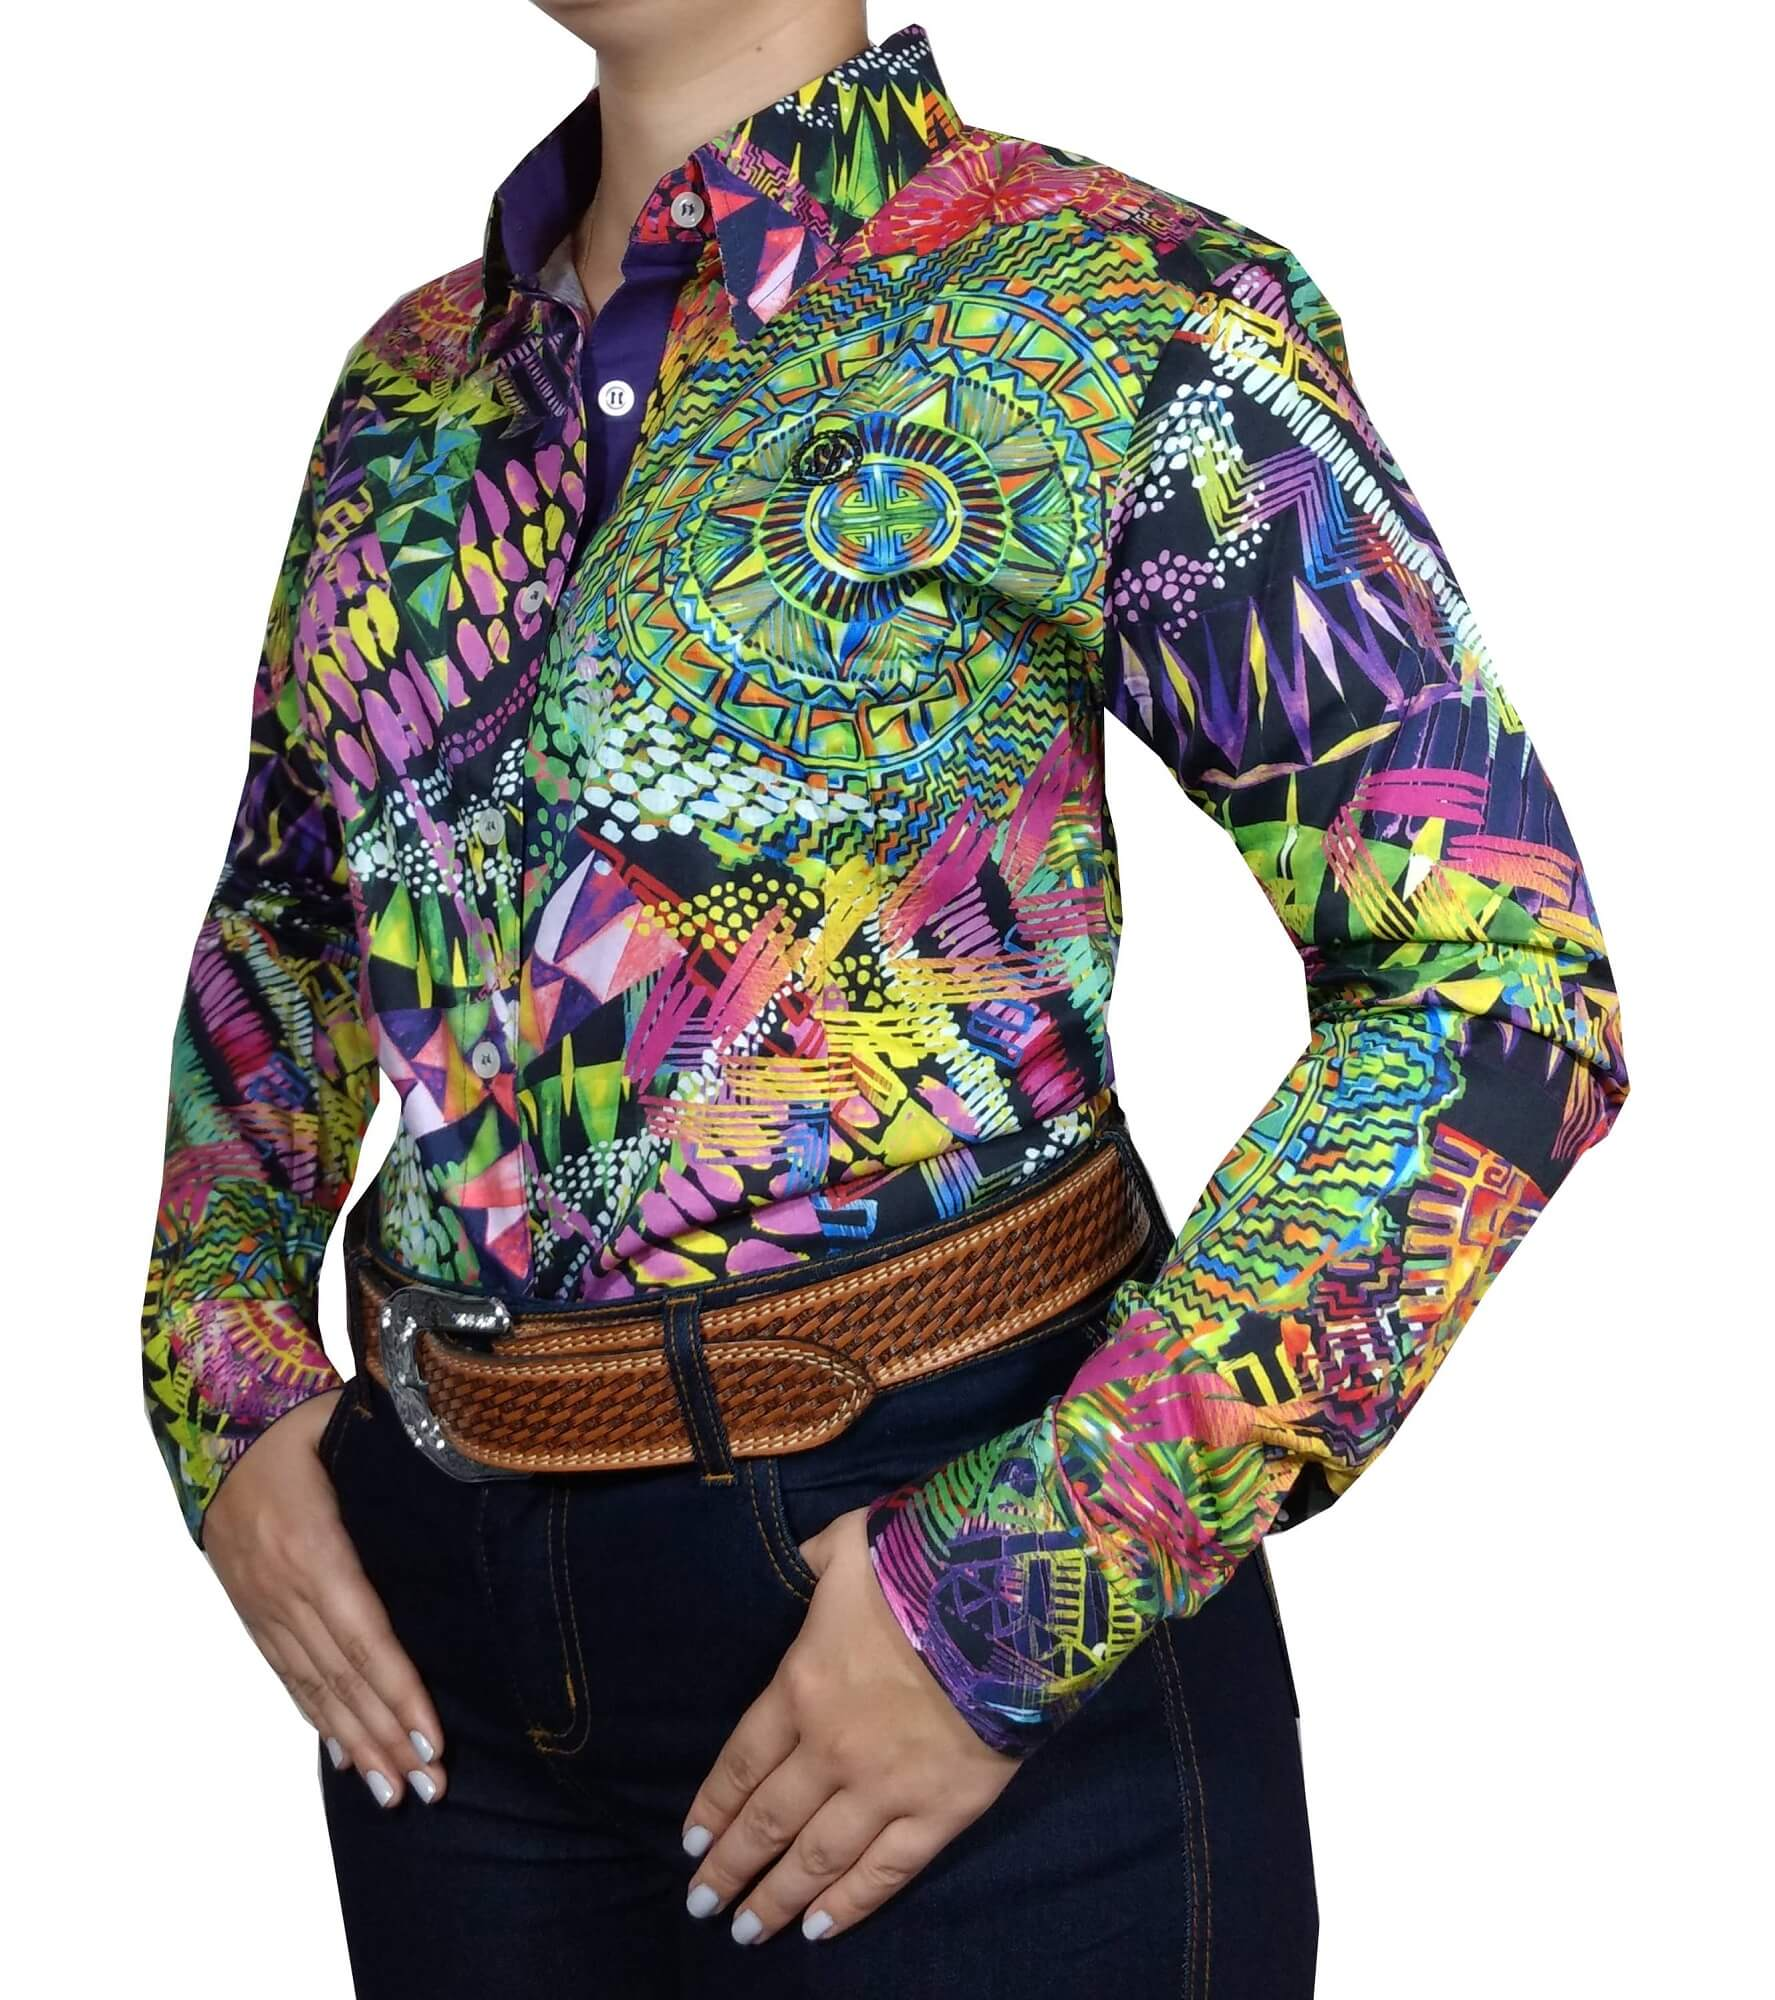 Camisa Feminina Smith Brothers Ref. Floral Mandala Colorida